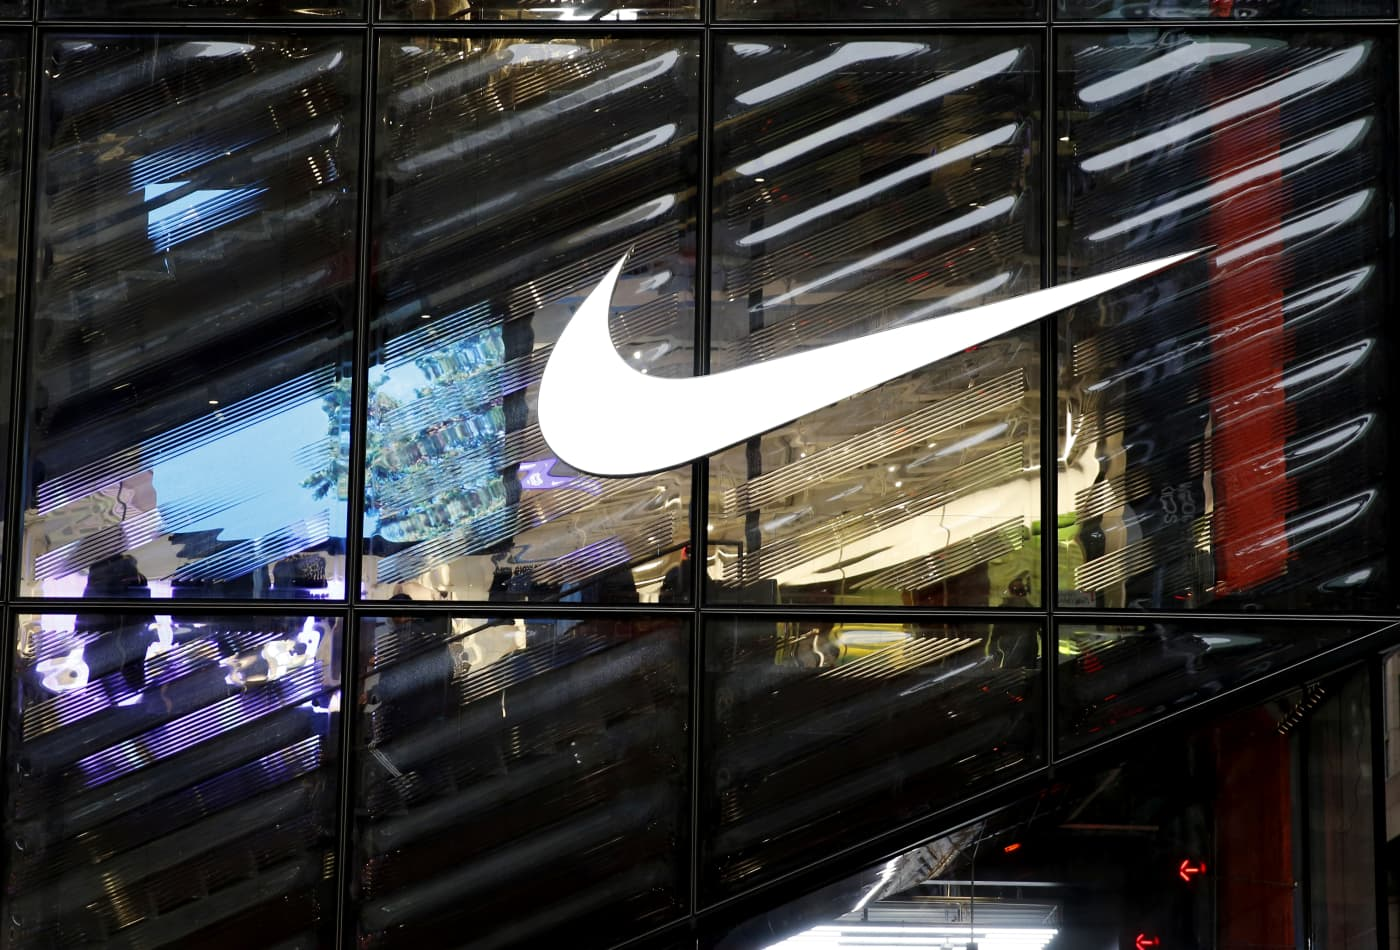 Here are Wednesday's biggest analyst calls of the day: Nike, Amazon, Netflix, FedEx, Coinbase & more